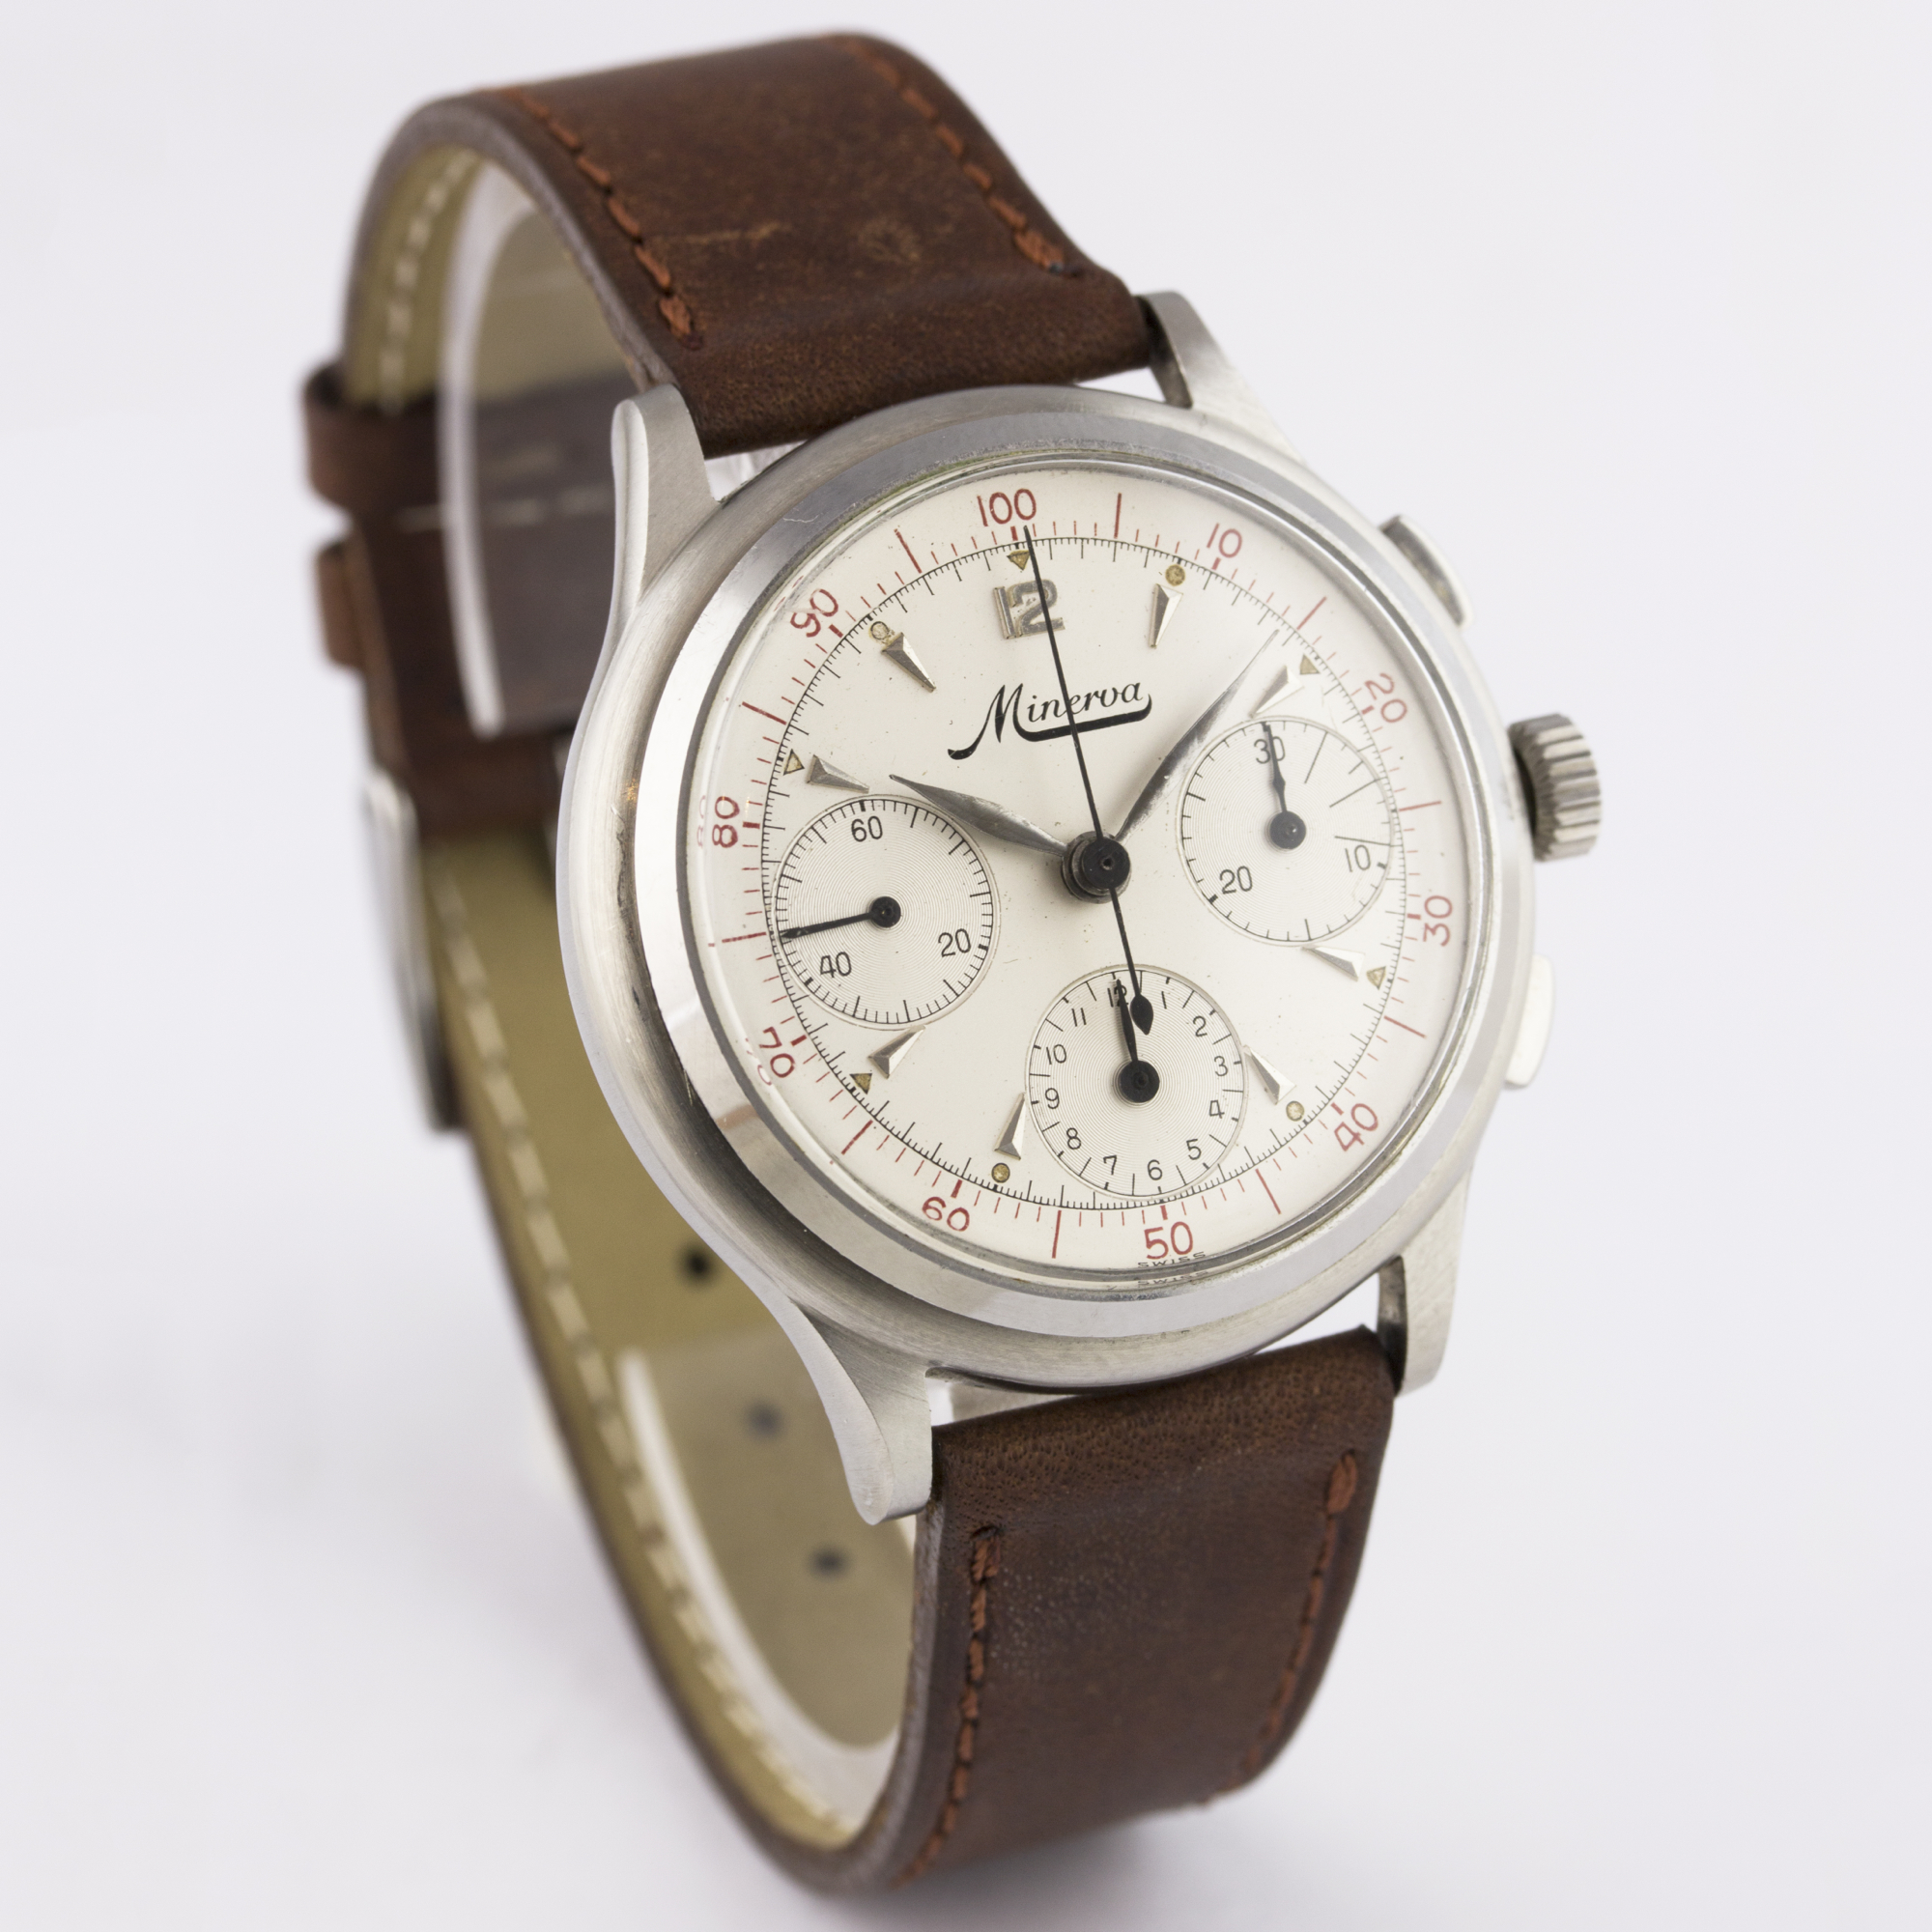 A RARE GENTLEMAN'S STAINLESS STEEL MINERVA DECIMAL CHRONOGRAPH WRIST WATCH CIRCA 1950s D: Silver - Image 6 of 9